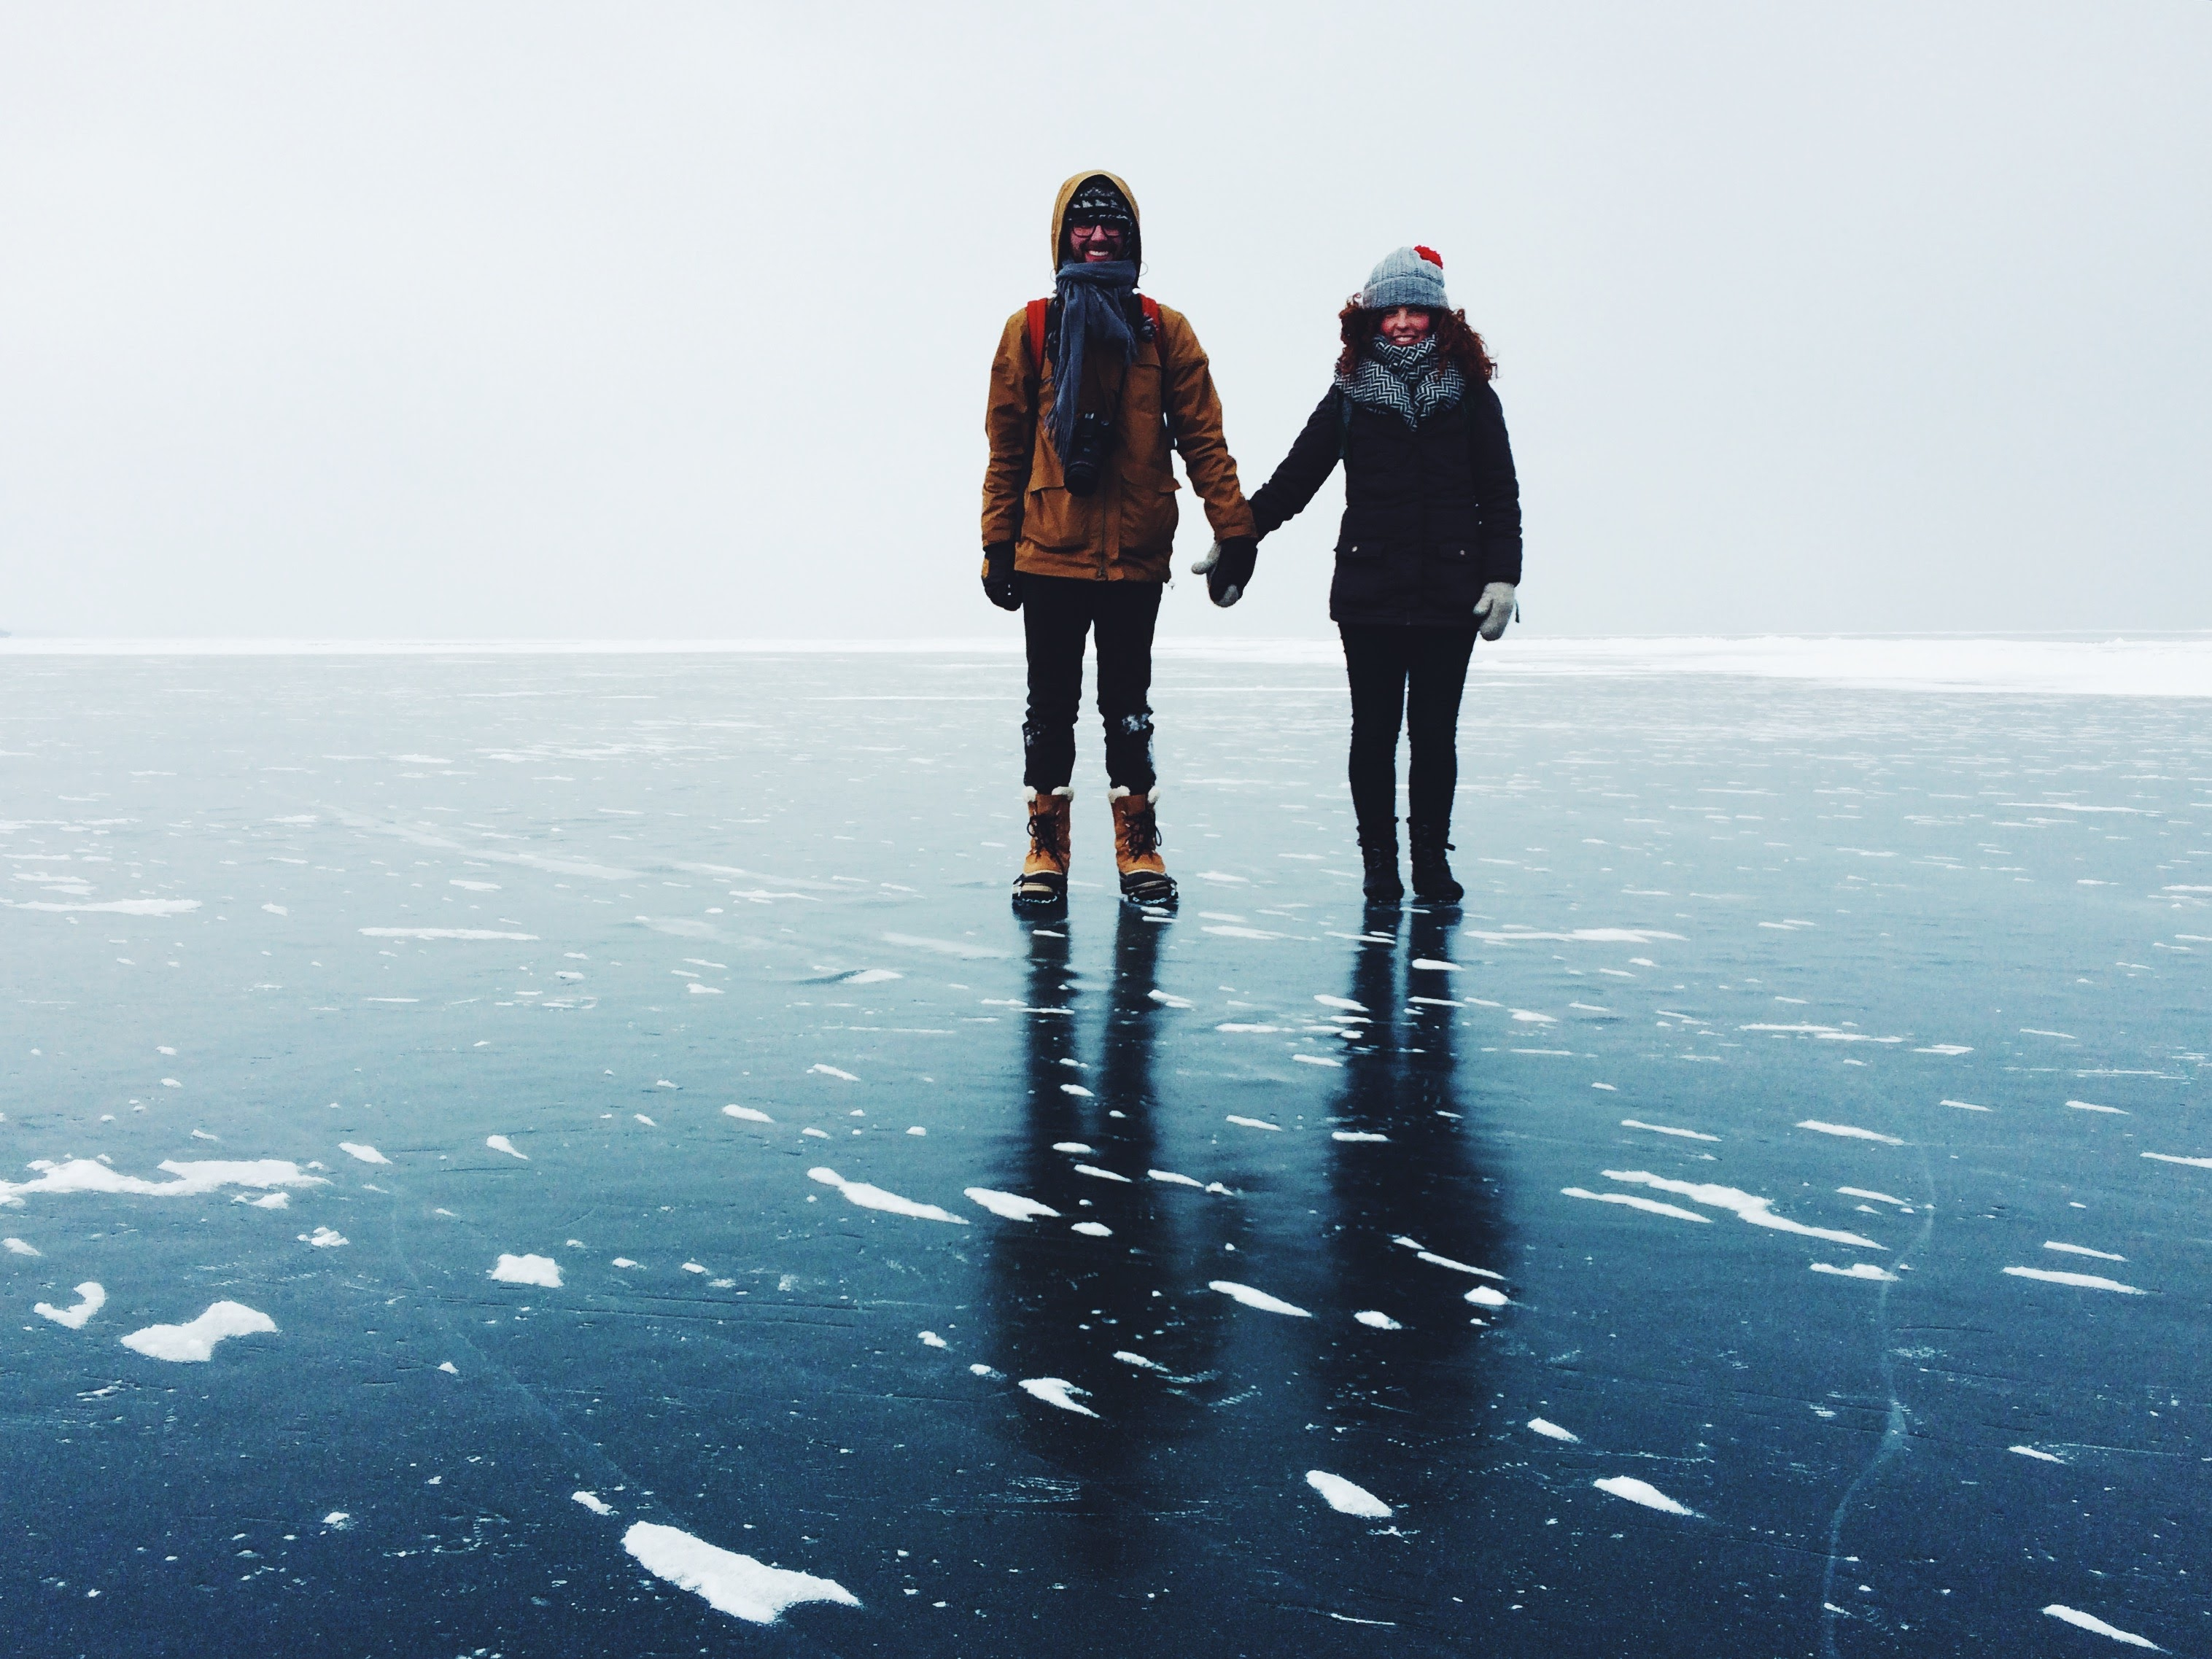 couple-holding-hands-on-ice-in-winter t20 kjB8Z3